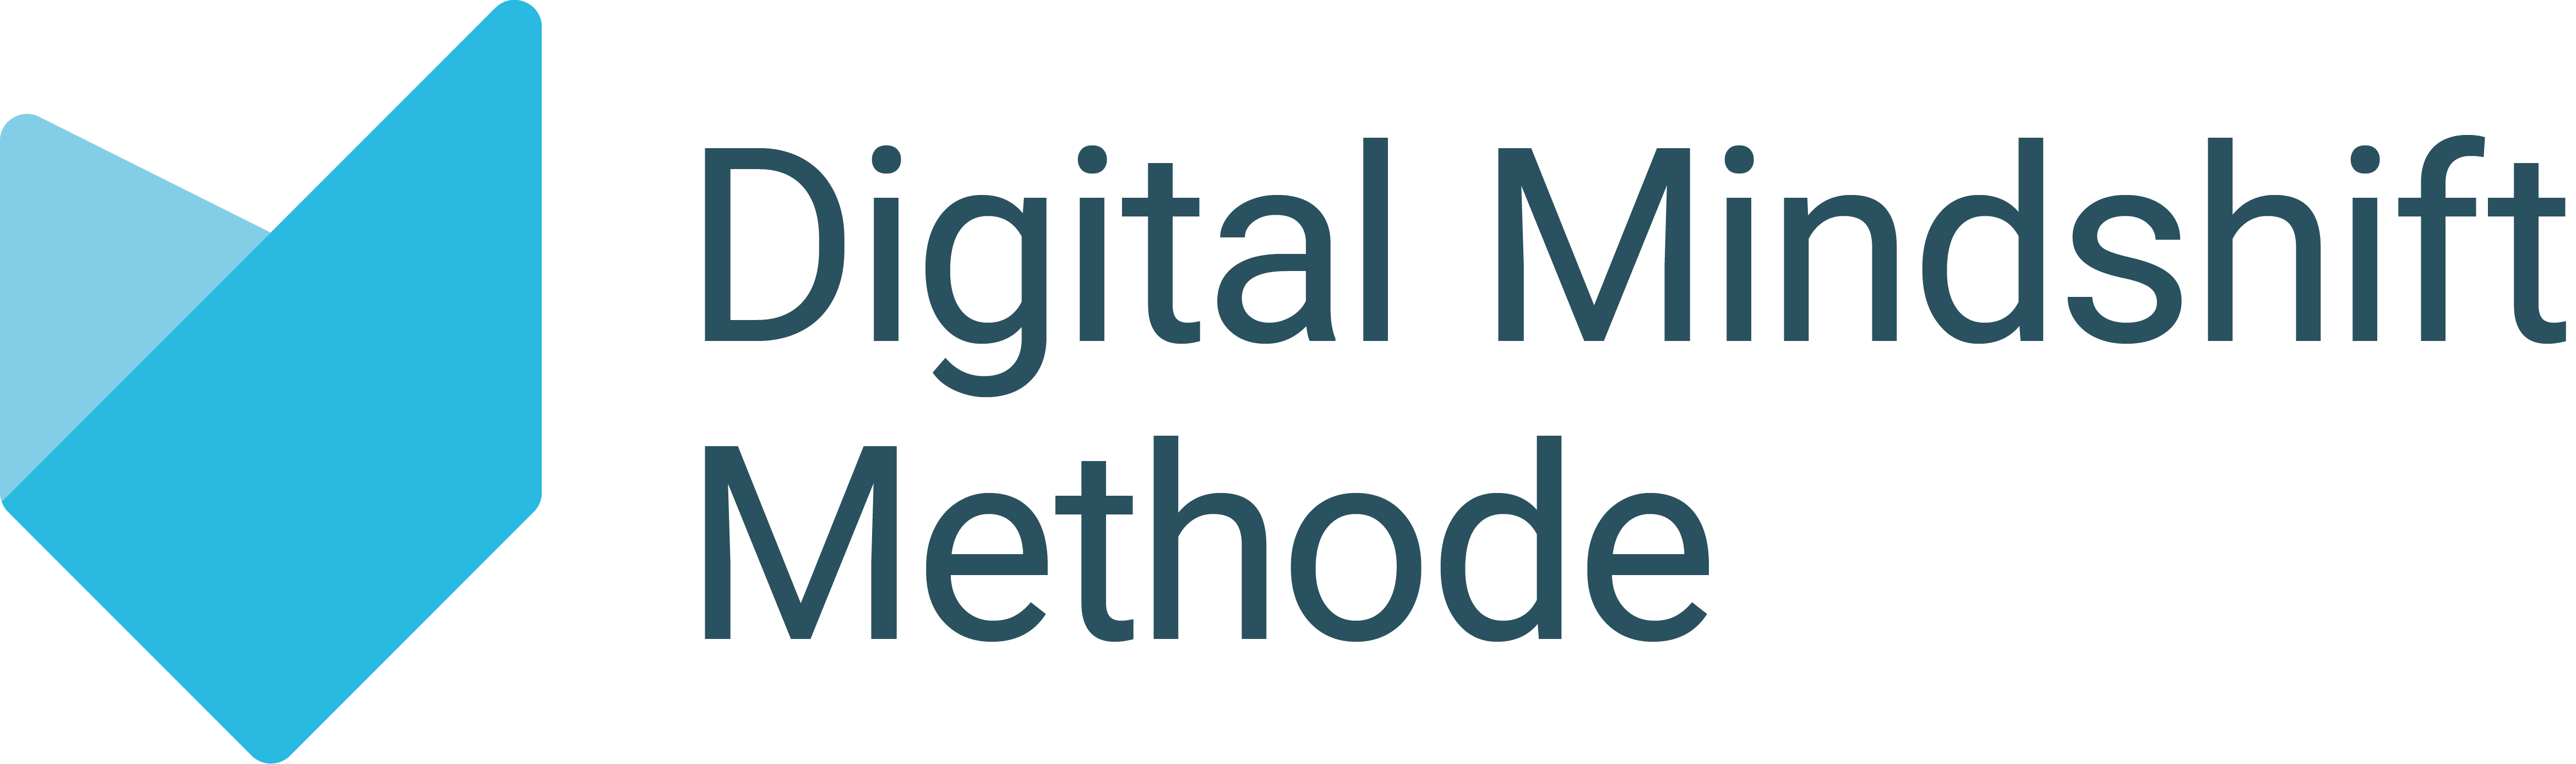 Digital Mindshift Methode